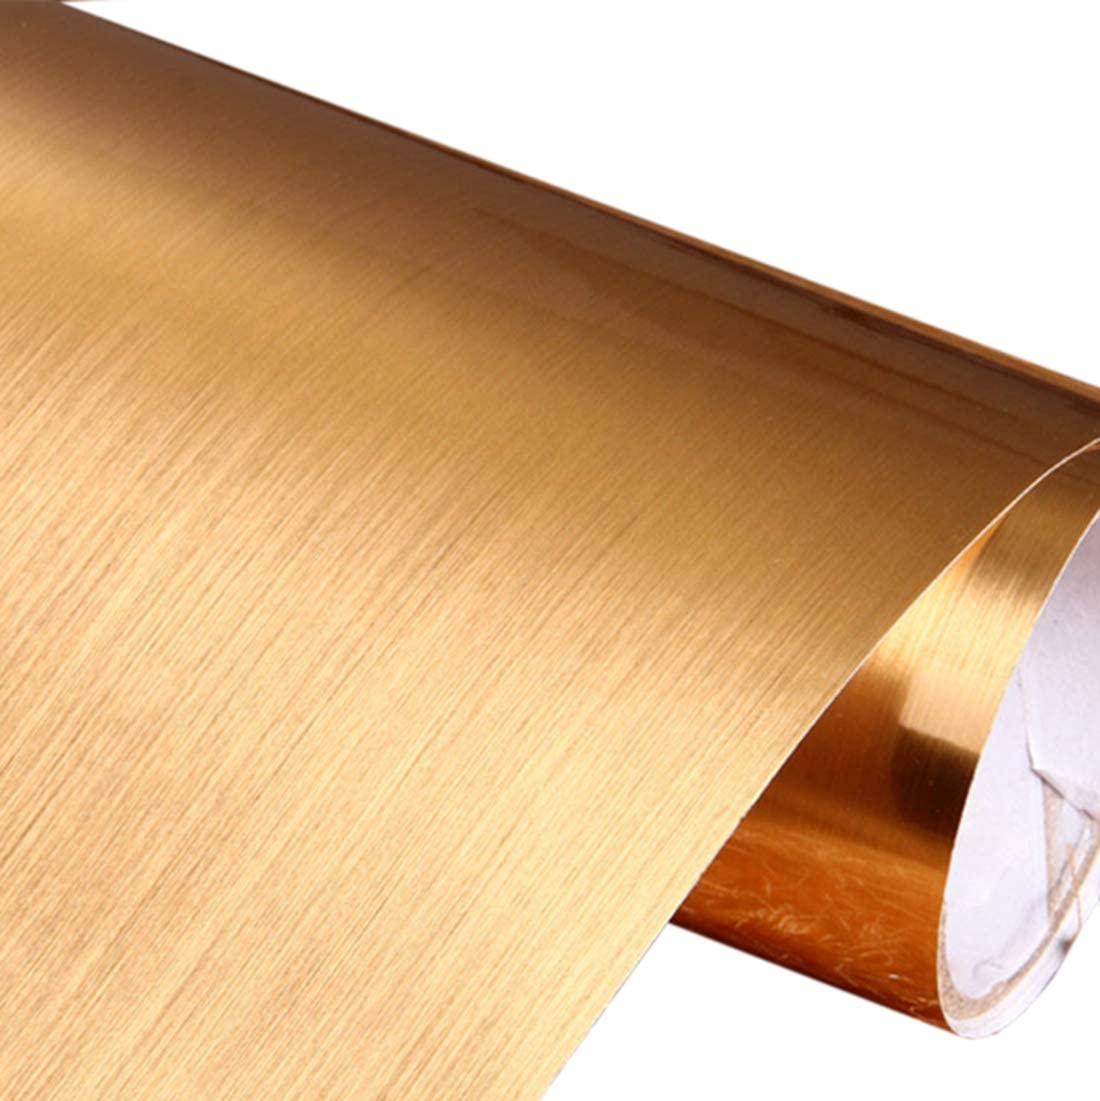 "Peel and Stick Brushed Metal Contact Paper Self Adhesive Vinyl Film Shelf Liner for Covering Backsplash Oven Dishwasher Pantry Appliances (24 x 117"", Gold)"